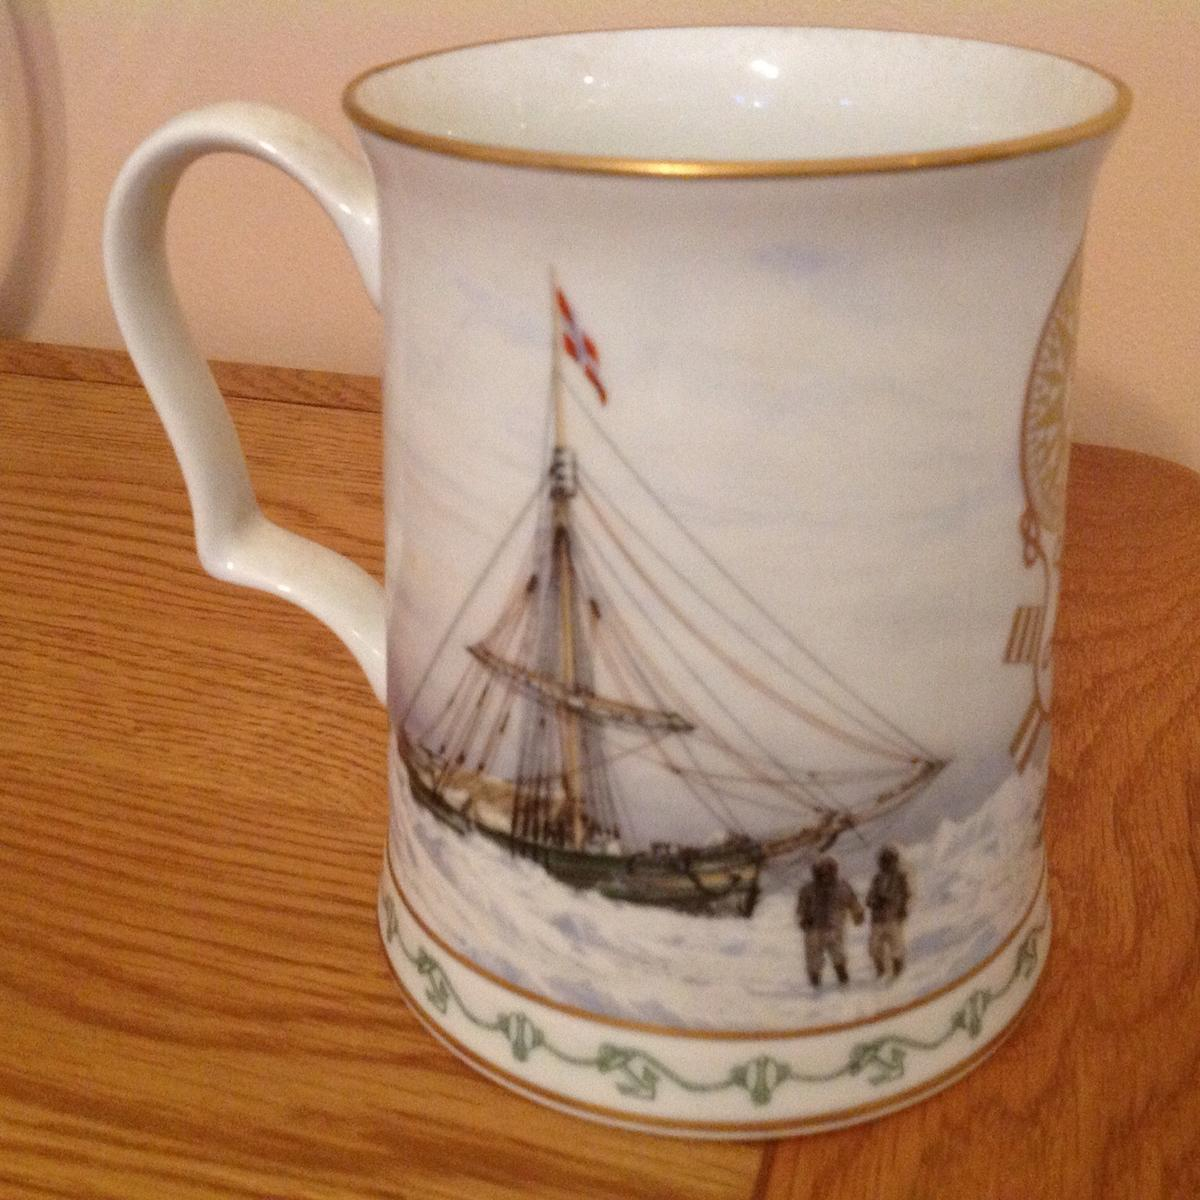 Ronald Amundsens ship Gjoa Norwegian maritime museum 75th anniversary Commemorative tankard Franklin mint national maritime museum collection